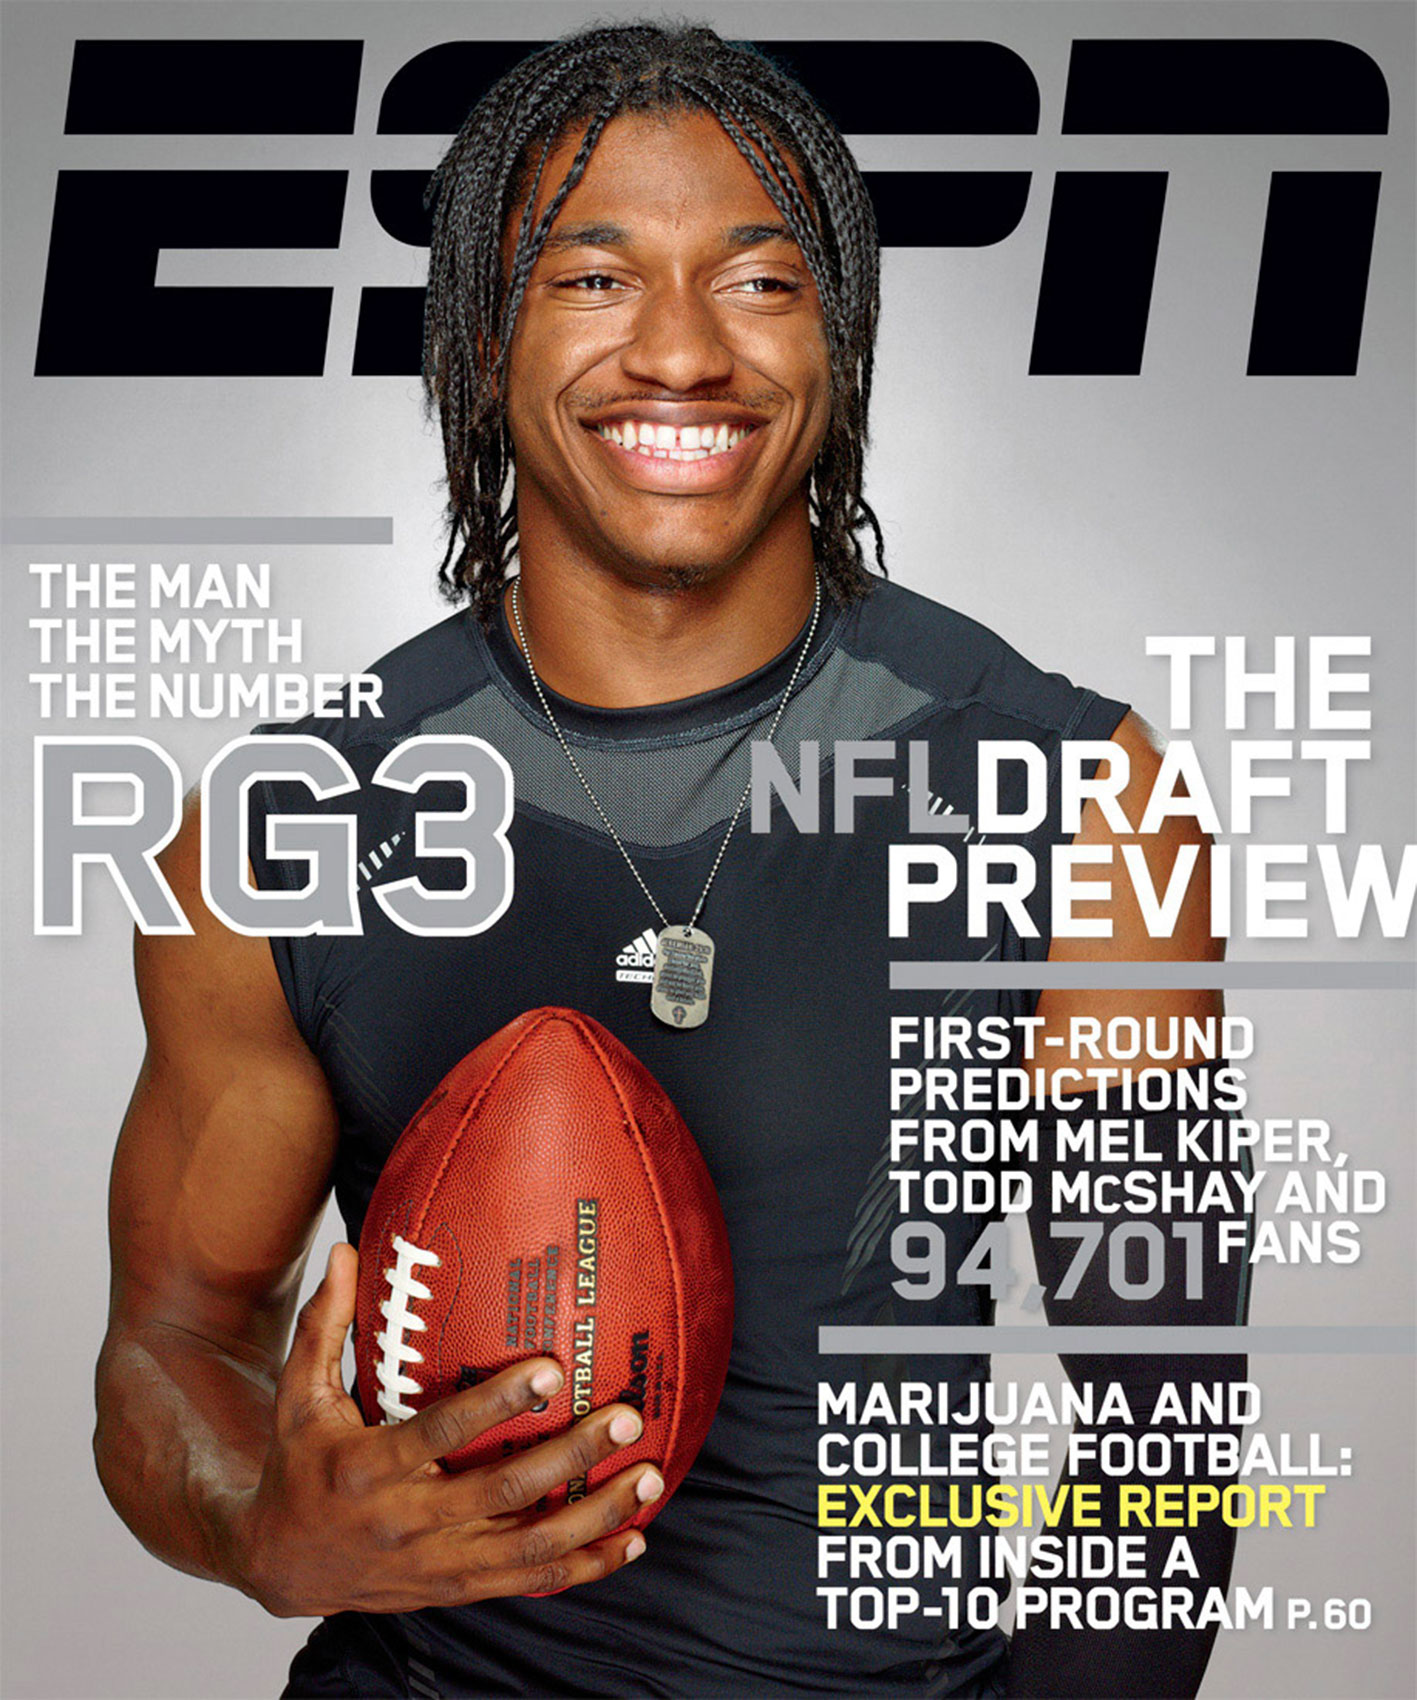 Griffin_Robert_III_ESPN_032712_Cover_Best_Avail